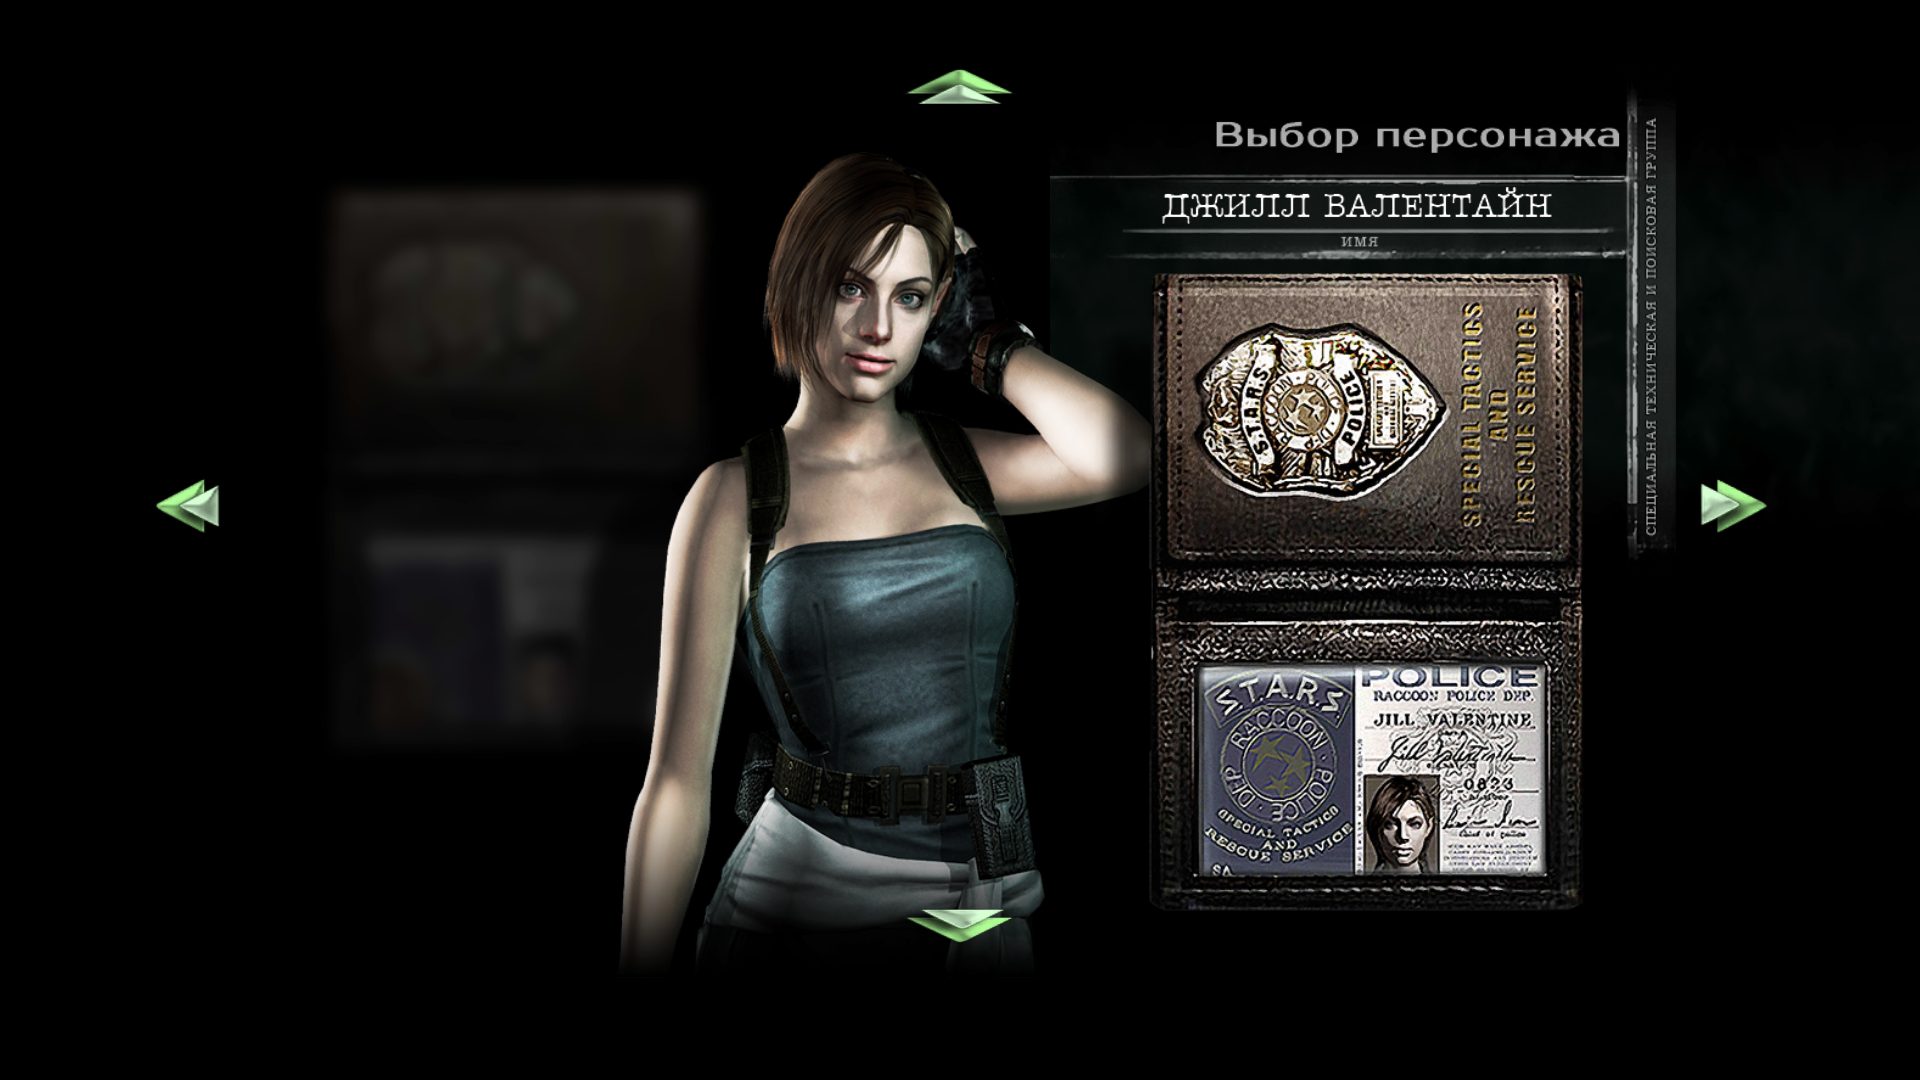 Download wii nude resident evil adult gallery